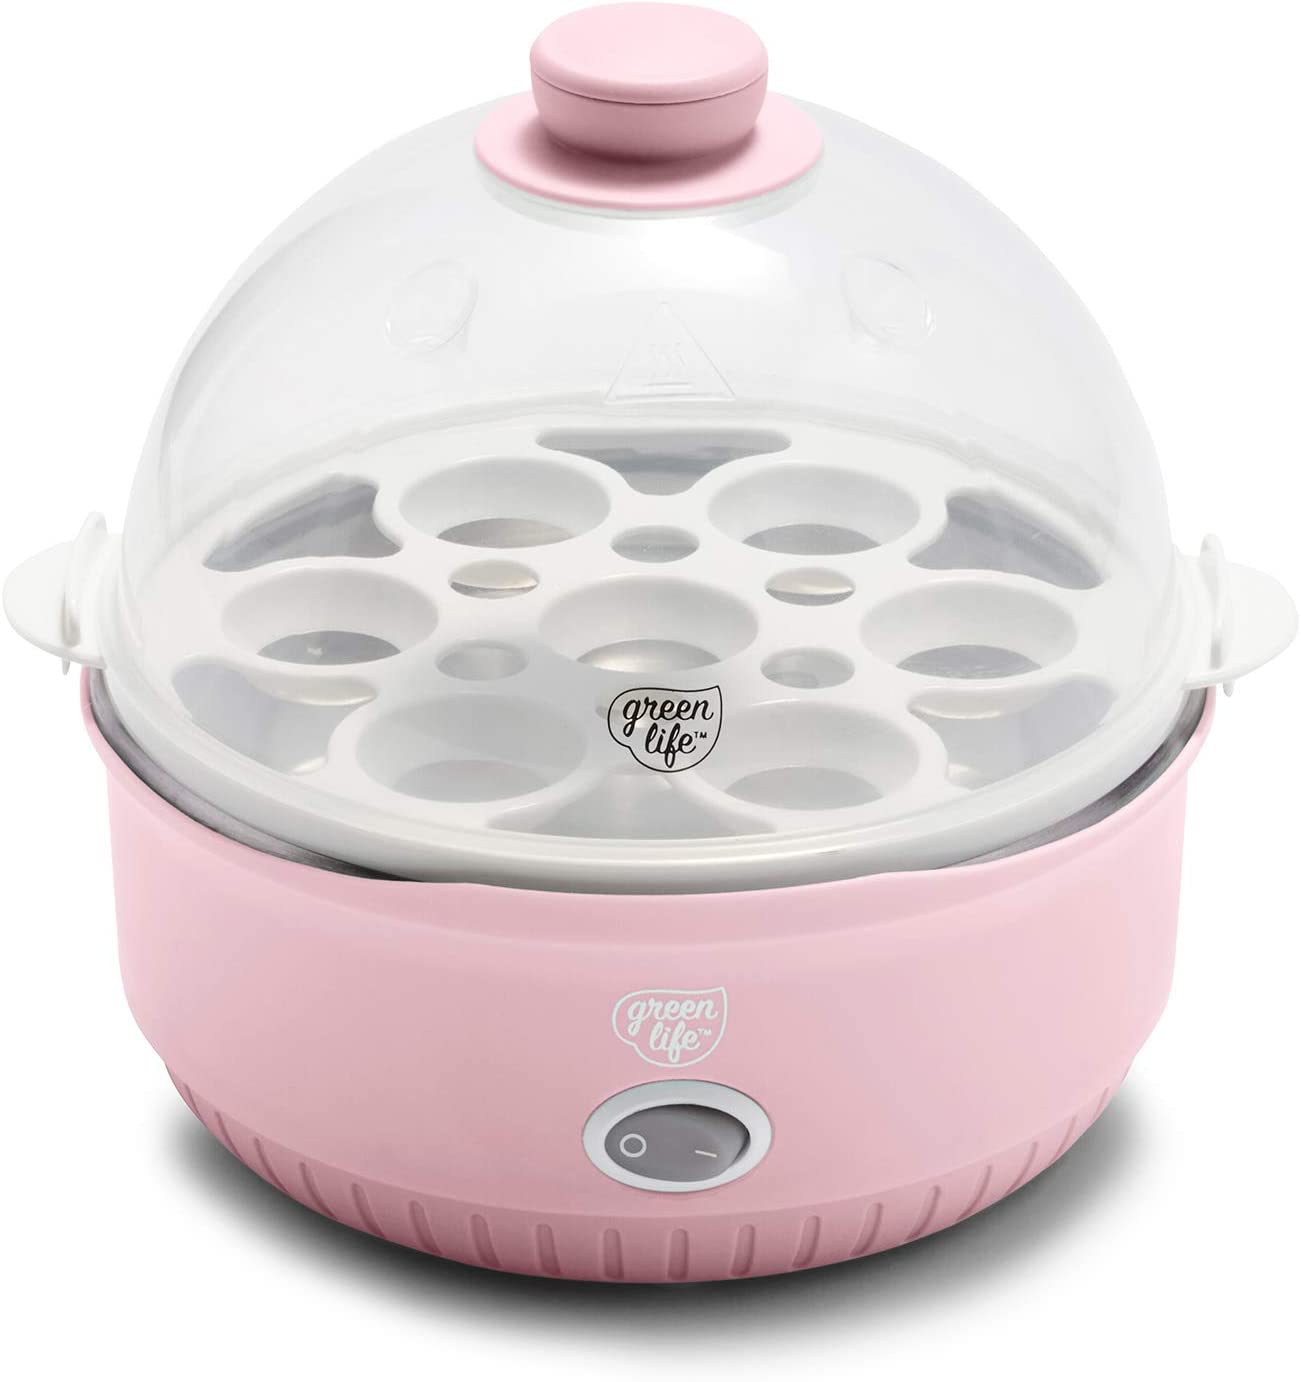 GreenLife CC003765-002 Qwik Egg Max 57% OFF One Cooker Pink Size OFFicial mail order